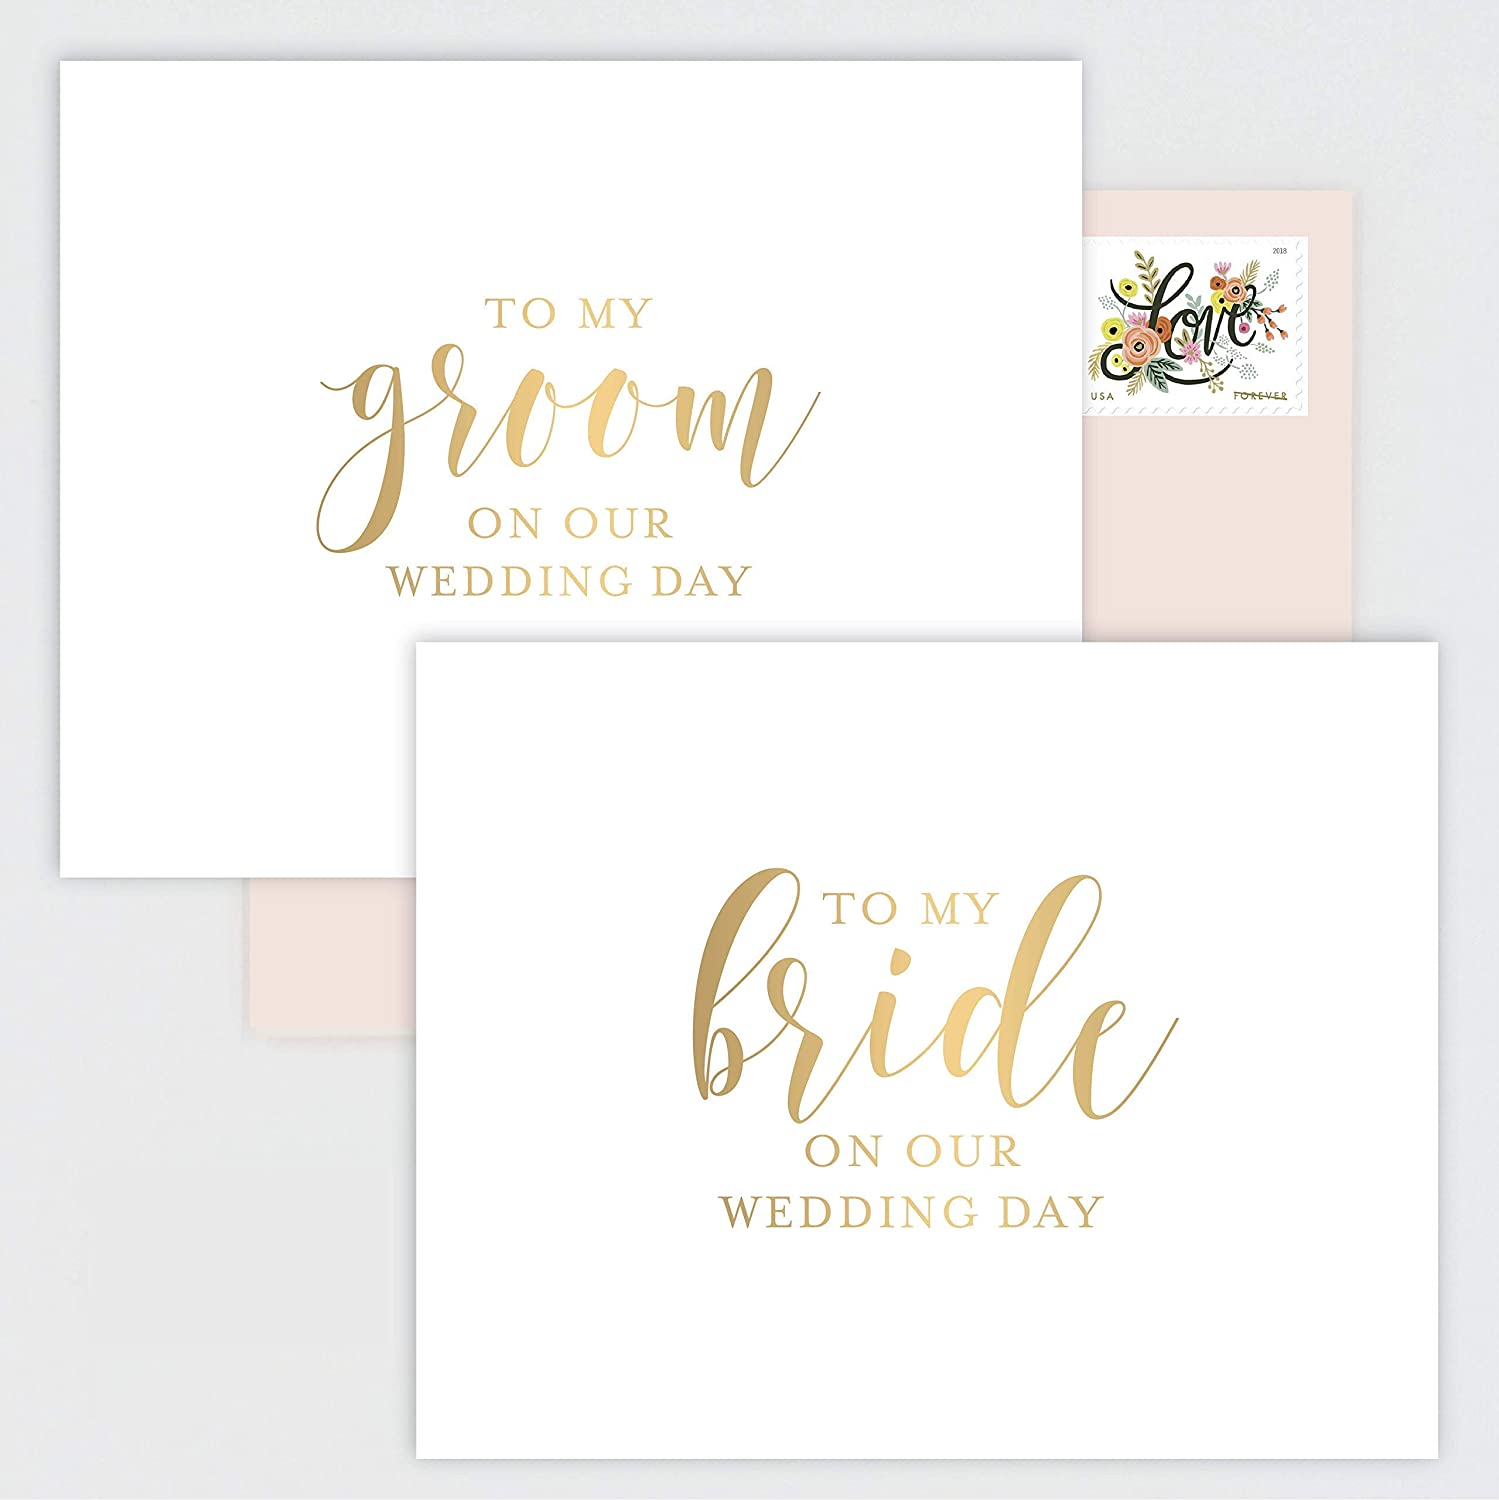 SET OF 2 Wedding Day Cards for Bride and Groom -Matching Gold Foil Calligraphy Cards with Blush Pink Envelopes